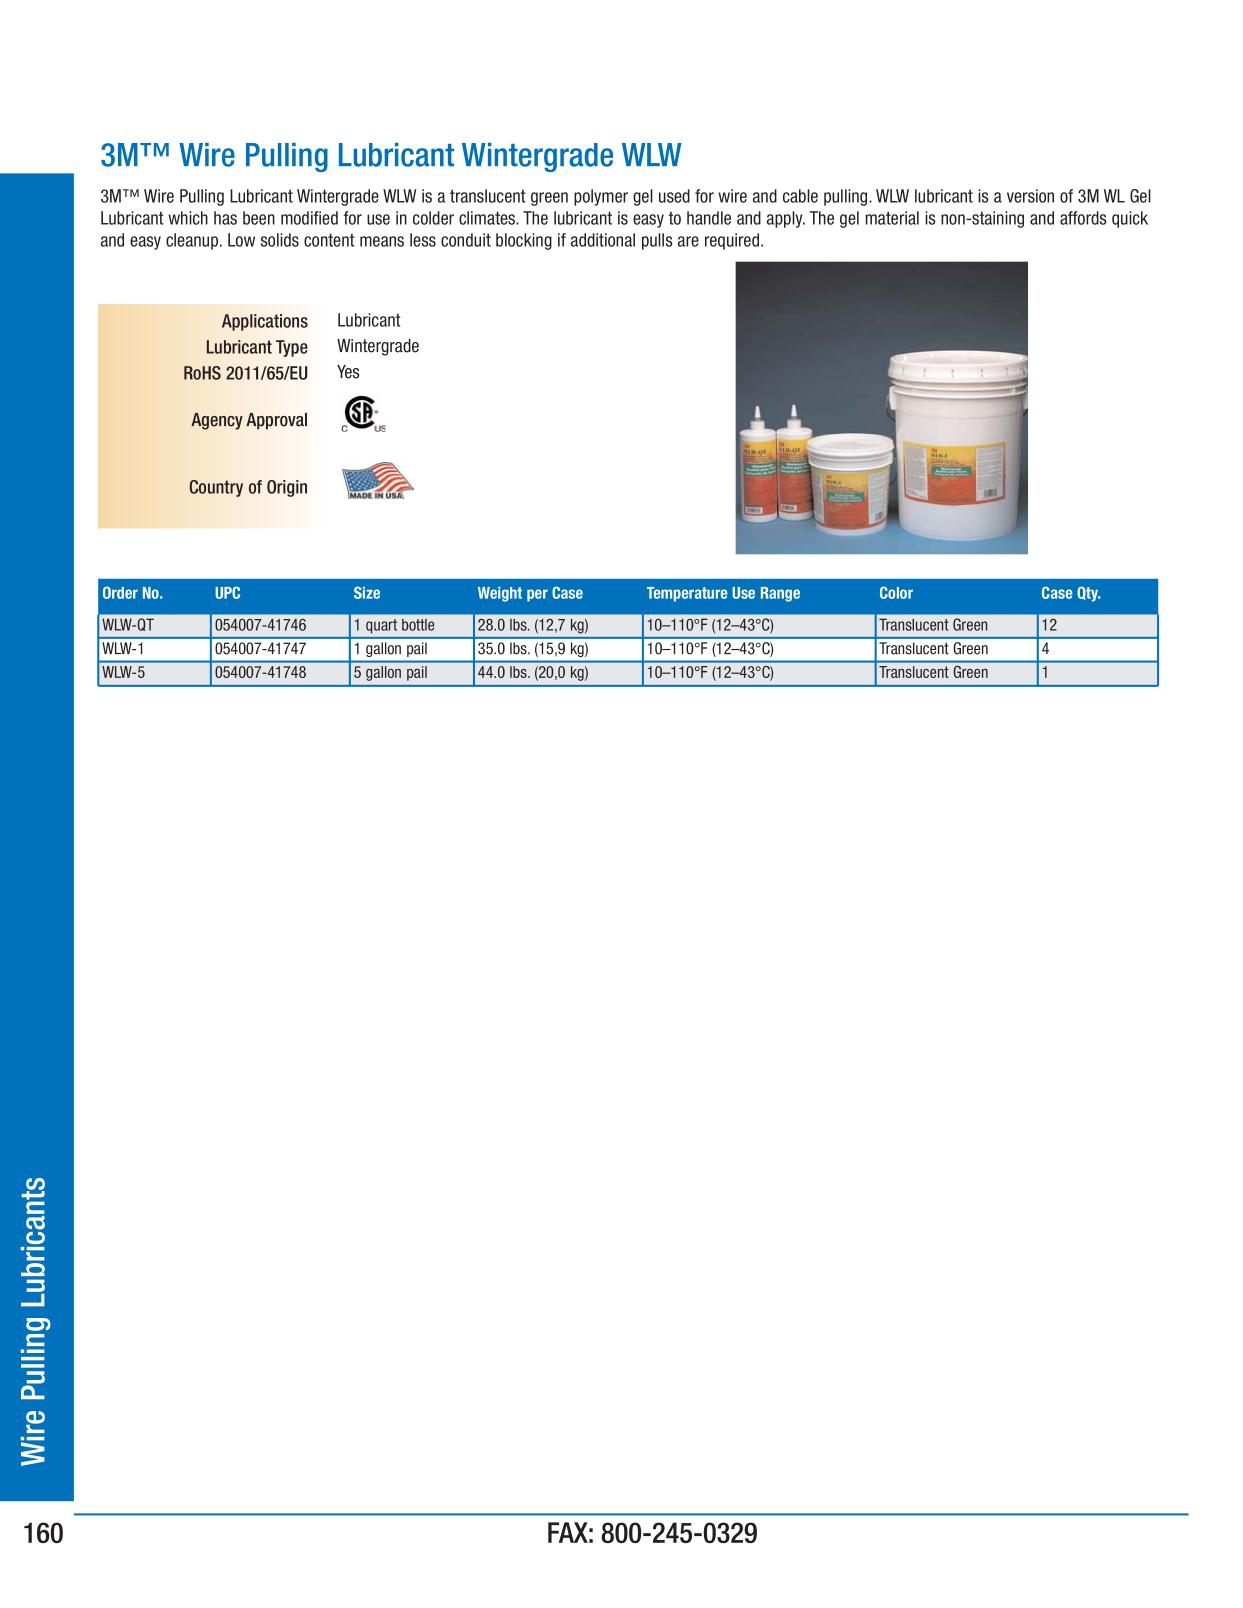 3M Electrical Products Page 160 - Wire Pulling Lubricants